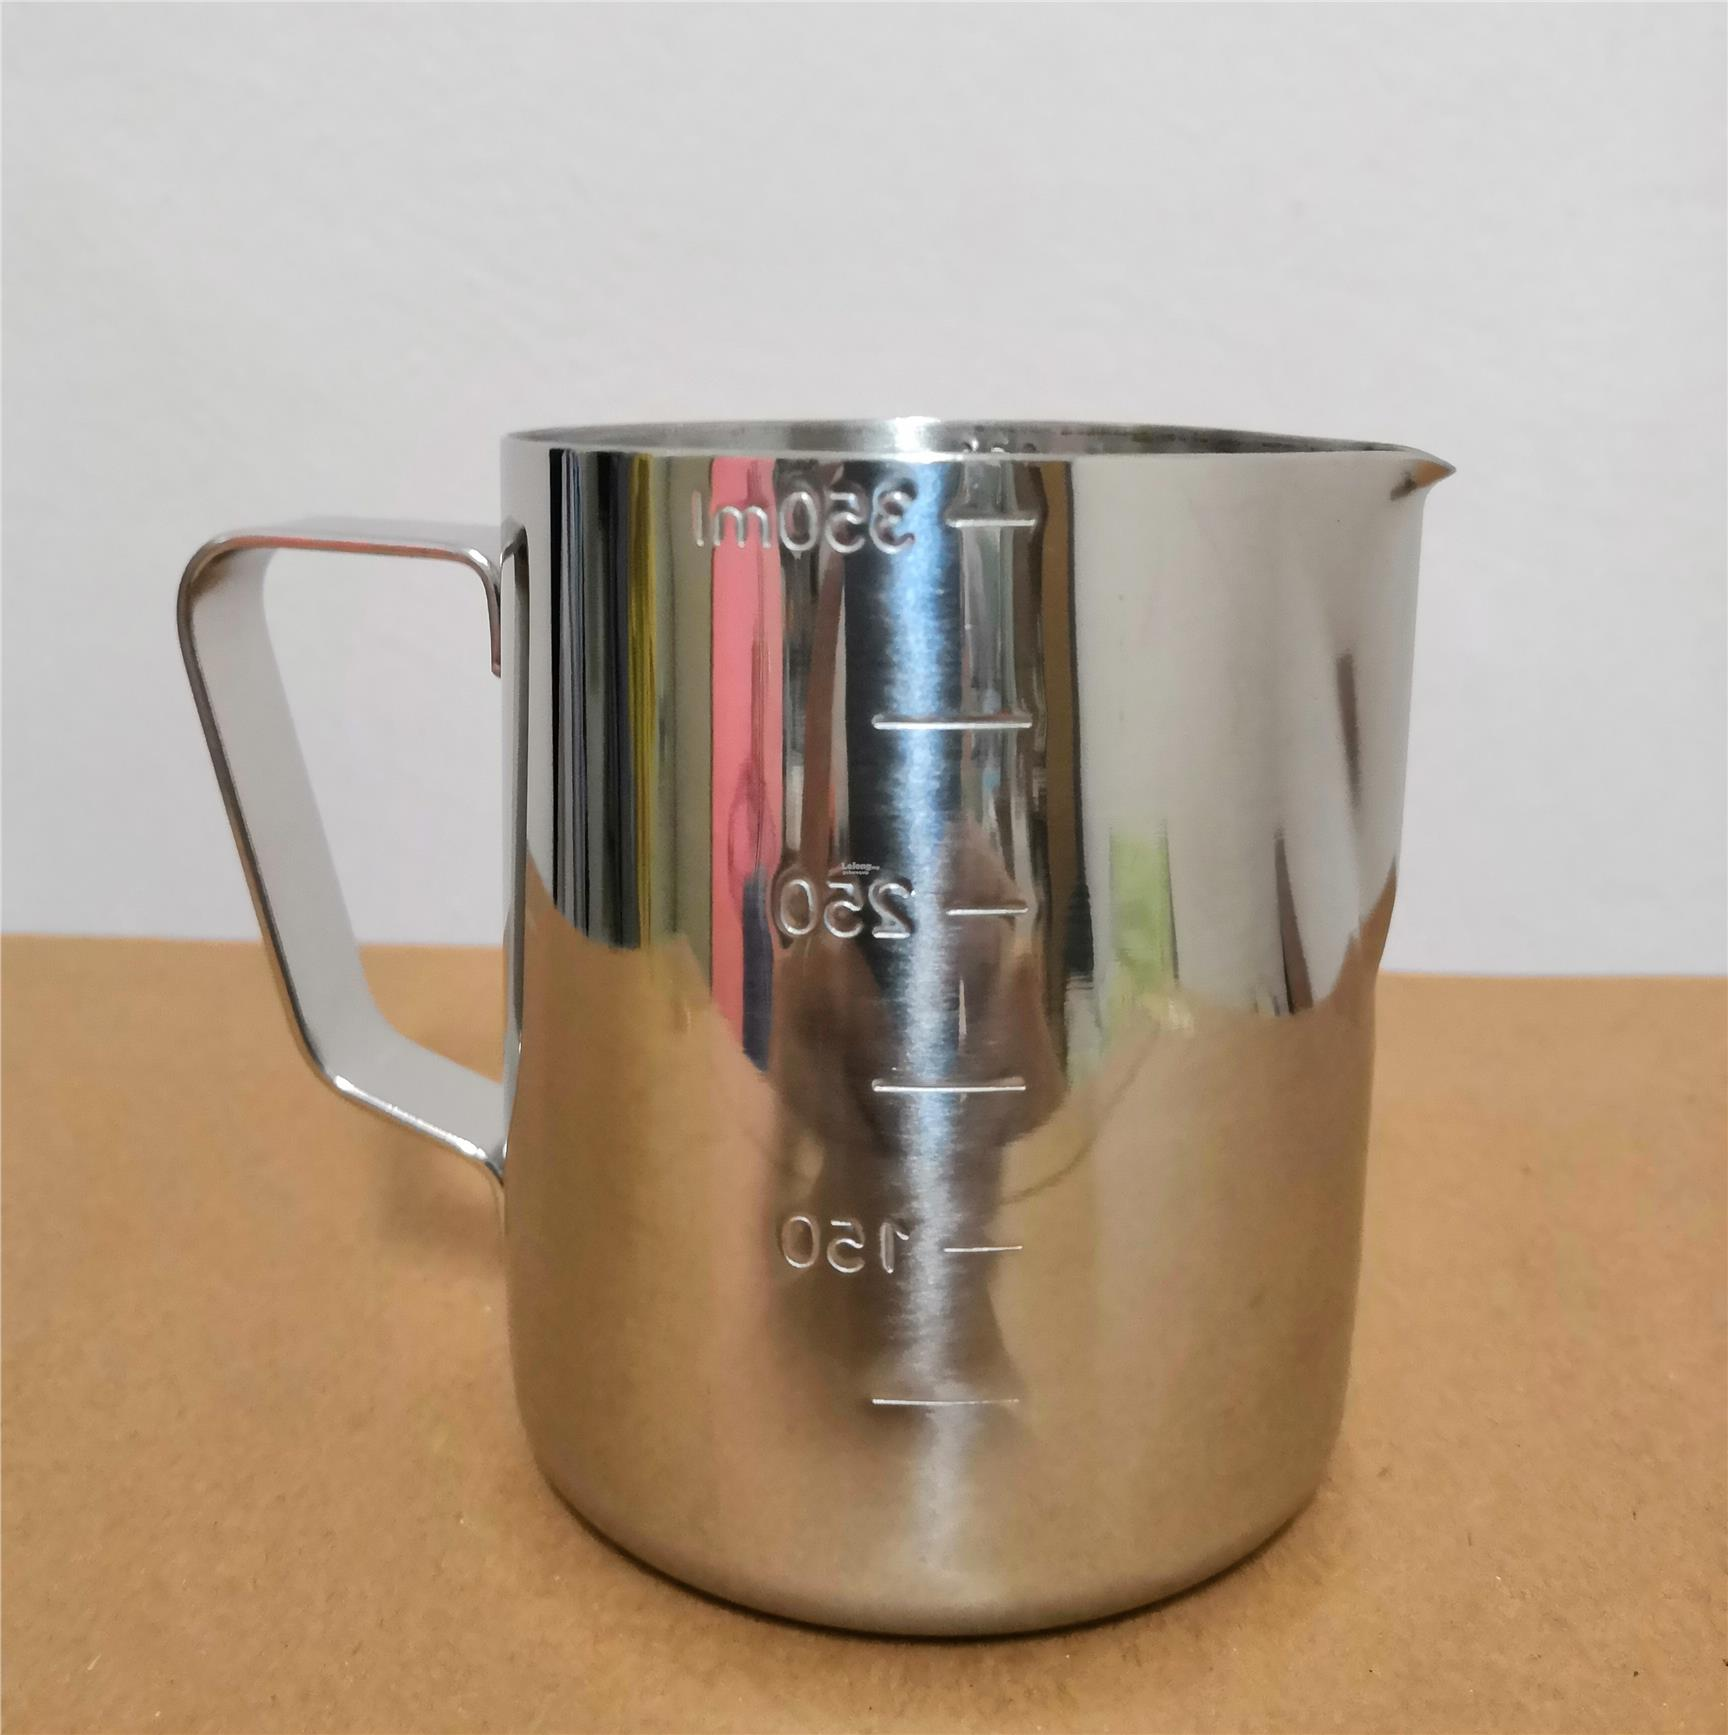 Sharp Mouth S/Steel Milk Frothing Steaming Pitcher Jug w/ Measurement